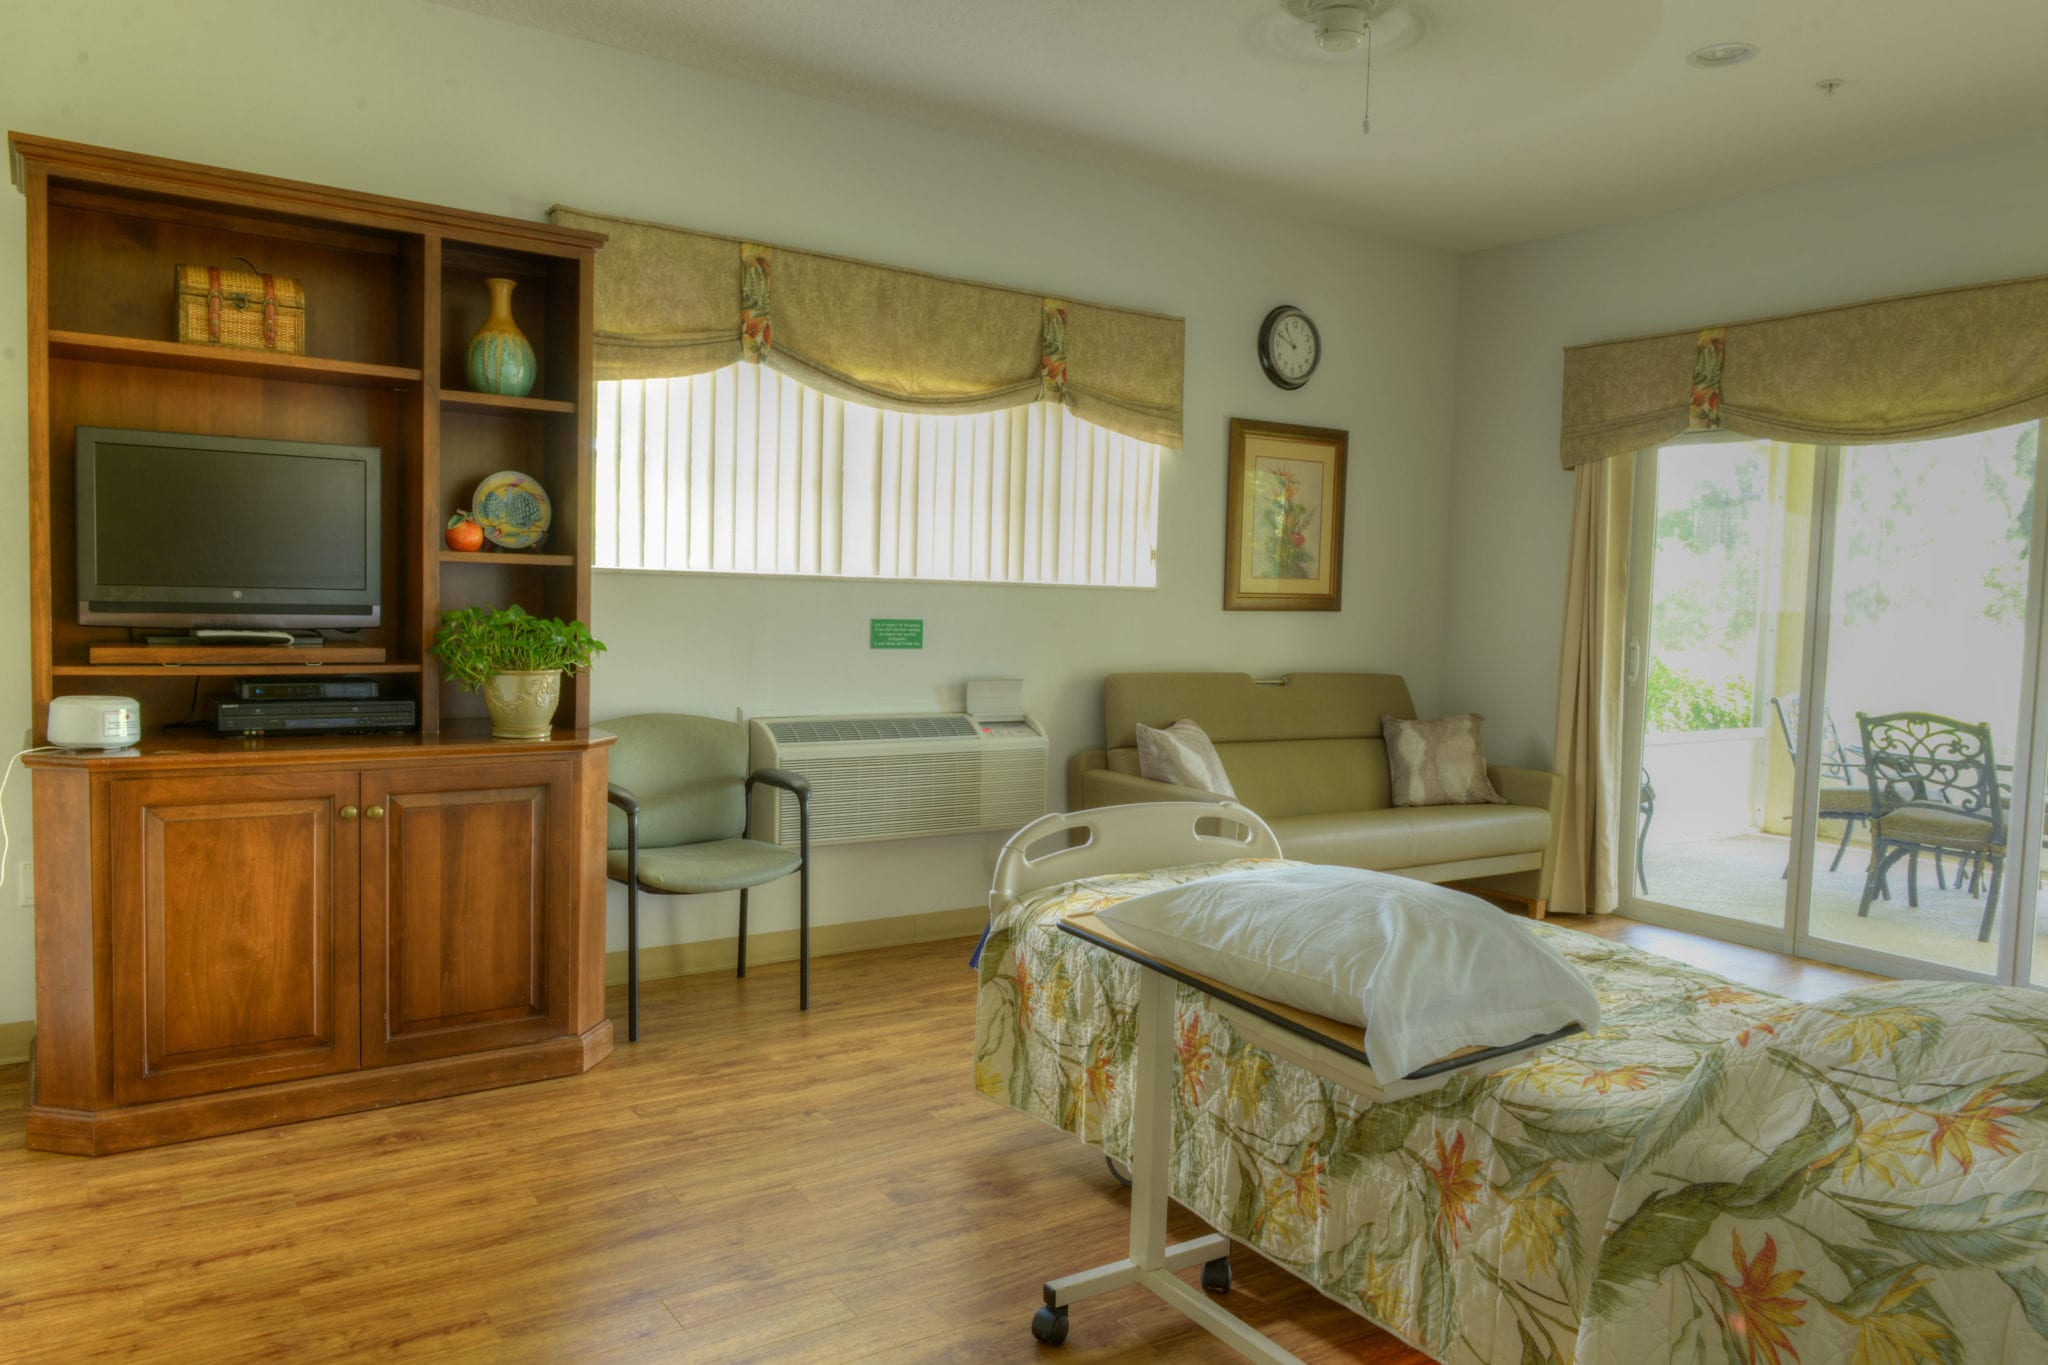 Inpatient Hospice Bedroom 1